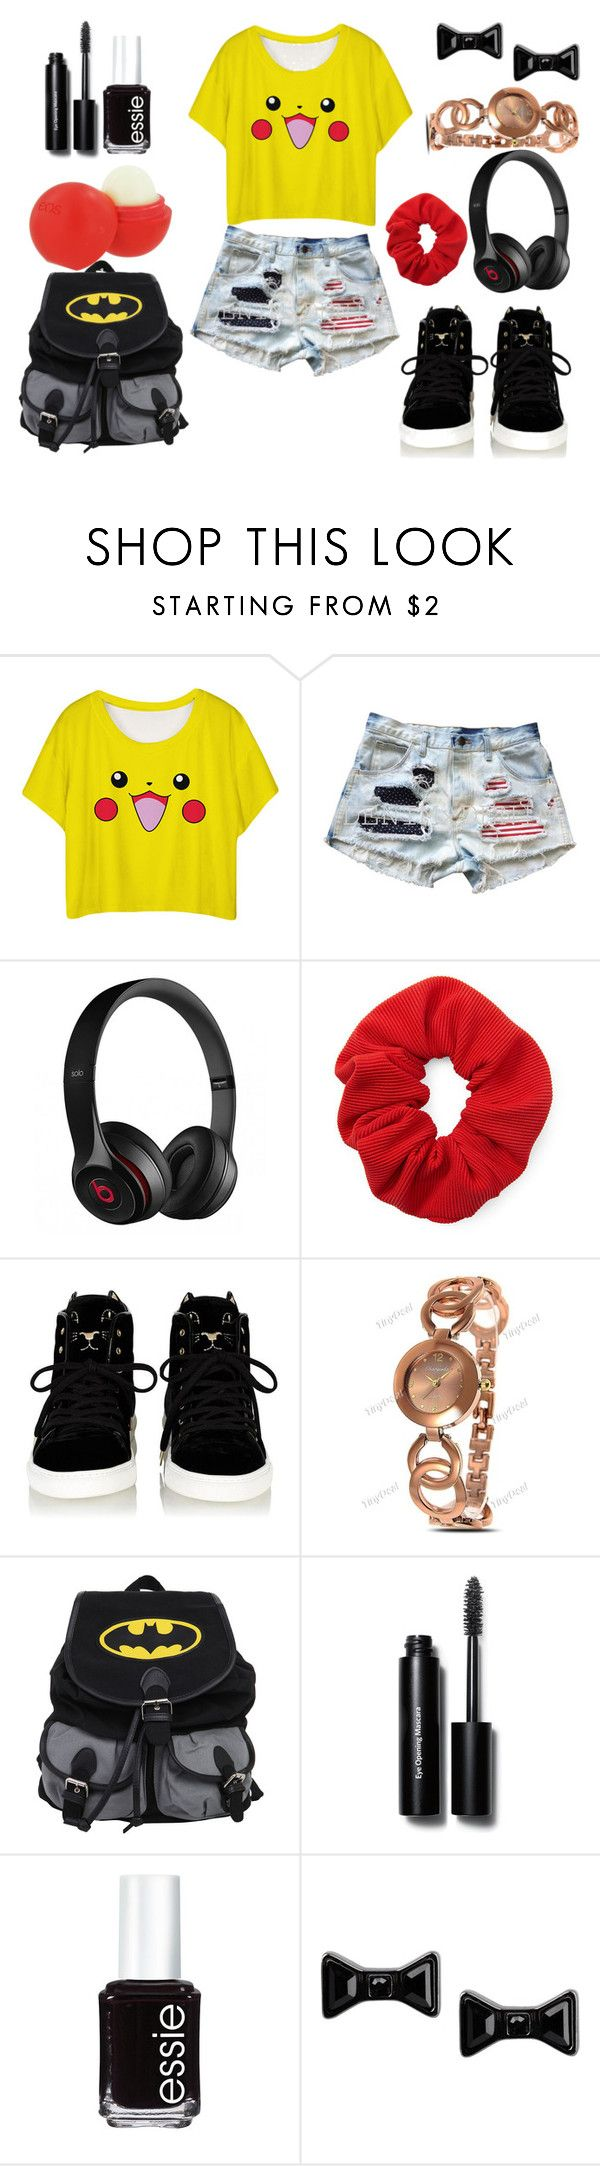 """calor españa *7"" by florchipaez ❤ liked on Polyvore featuring Beats by Dr. Dre, Forever 21, Eos, Bobbi Brown Cosmetics, Essie, Marc by Marc Jacobs, women's clothing, women, female and woman"